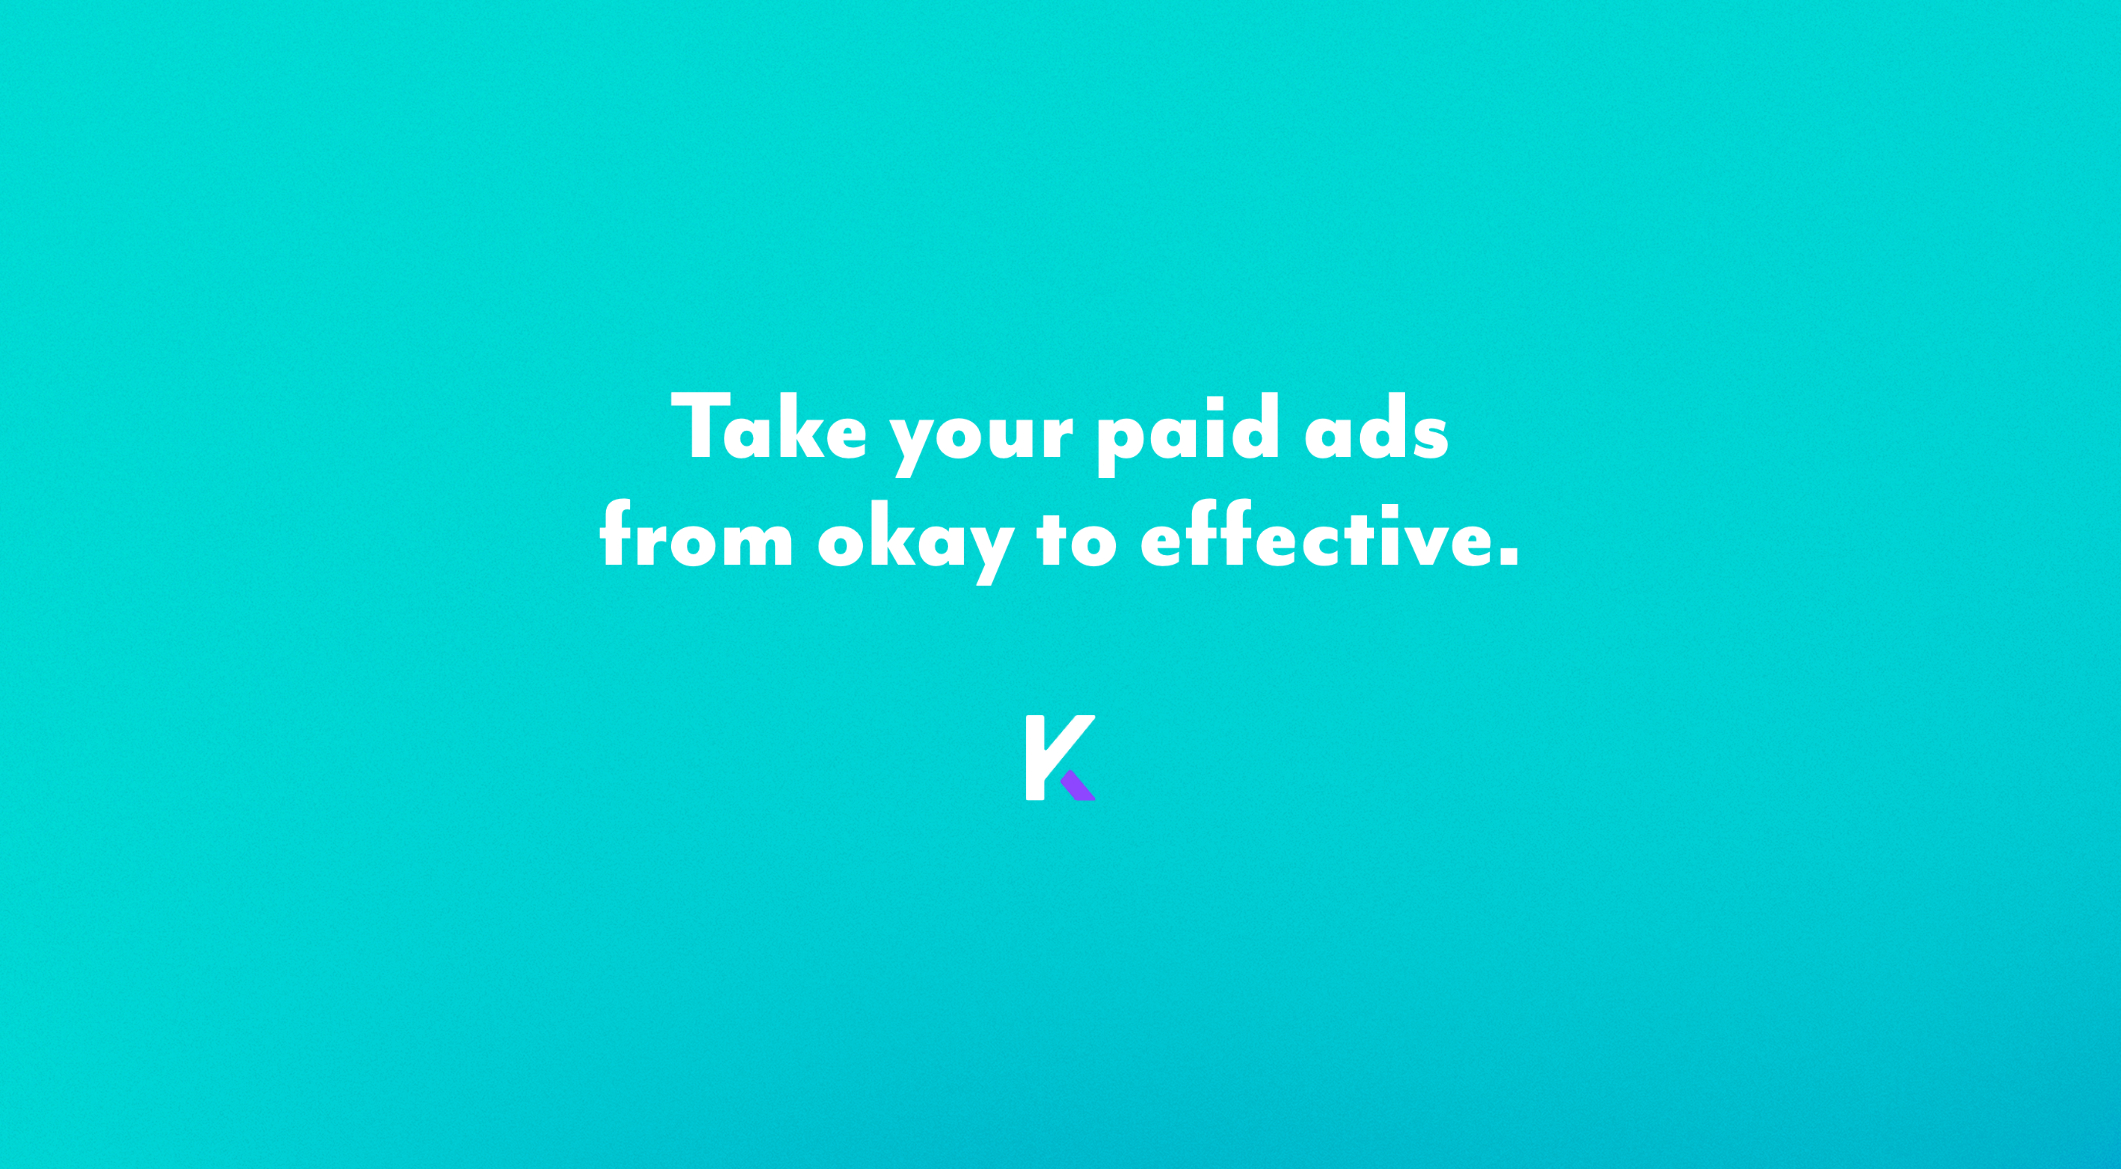 How to Take Your Paid Ads From OK to Effective | Kicks Digital Marketing